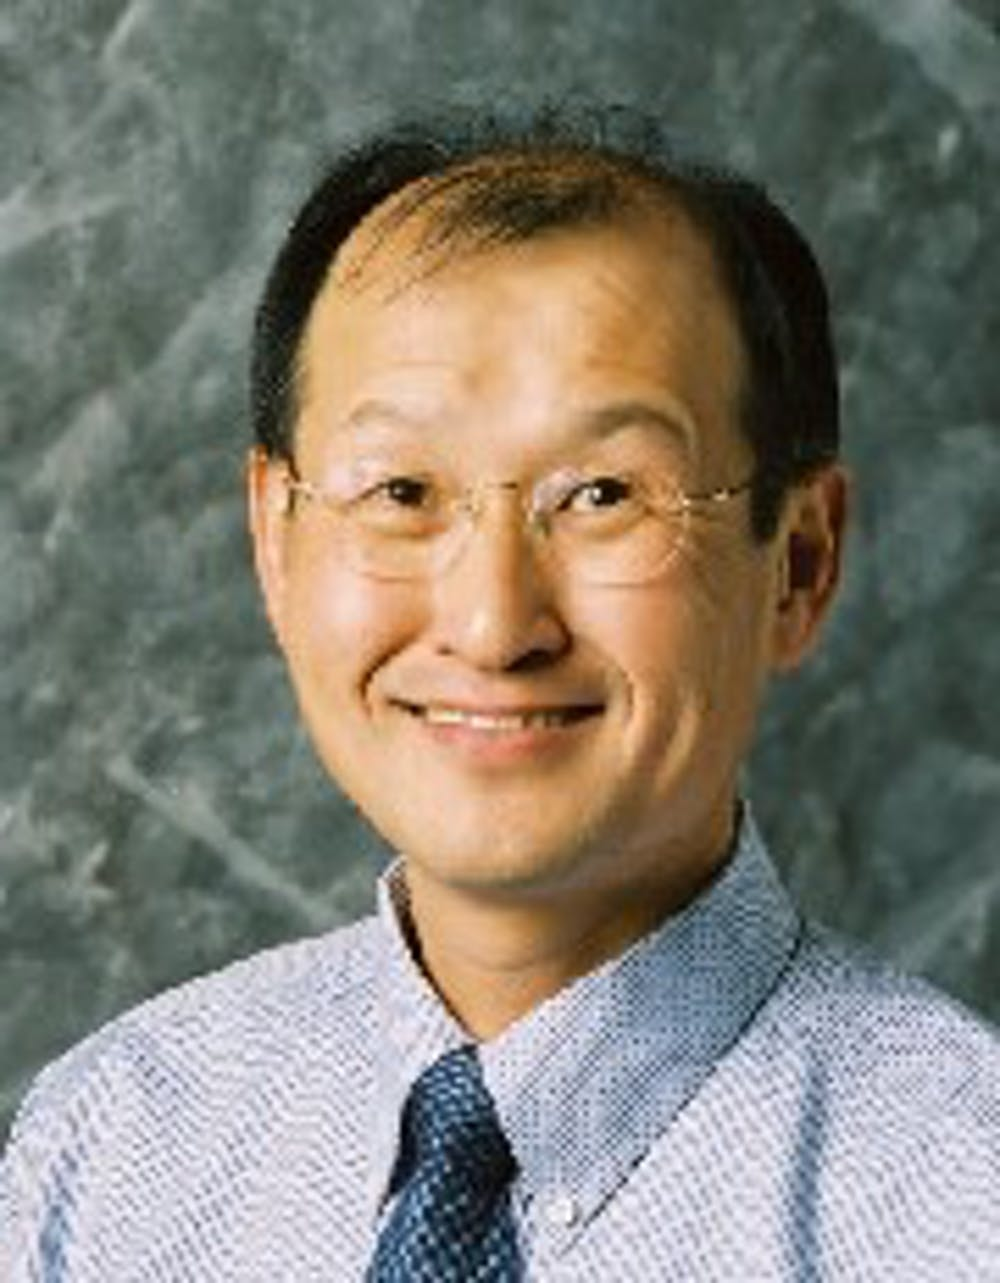 <p>Penn professor <strong>Insup Lee </strong>is working on securing the usage and transmittance of data within medical devices.</p>